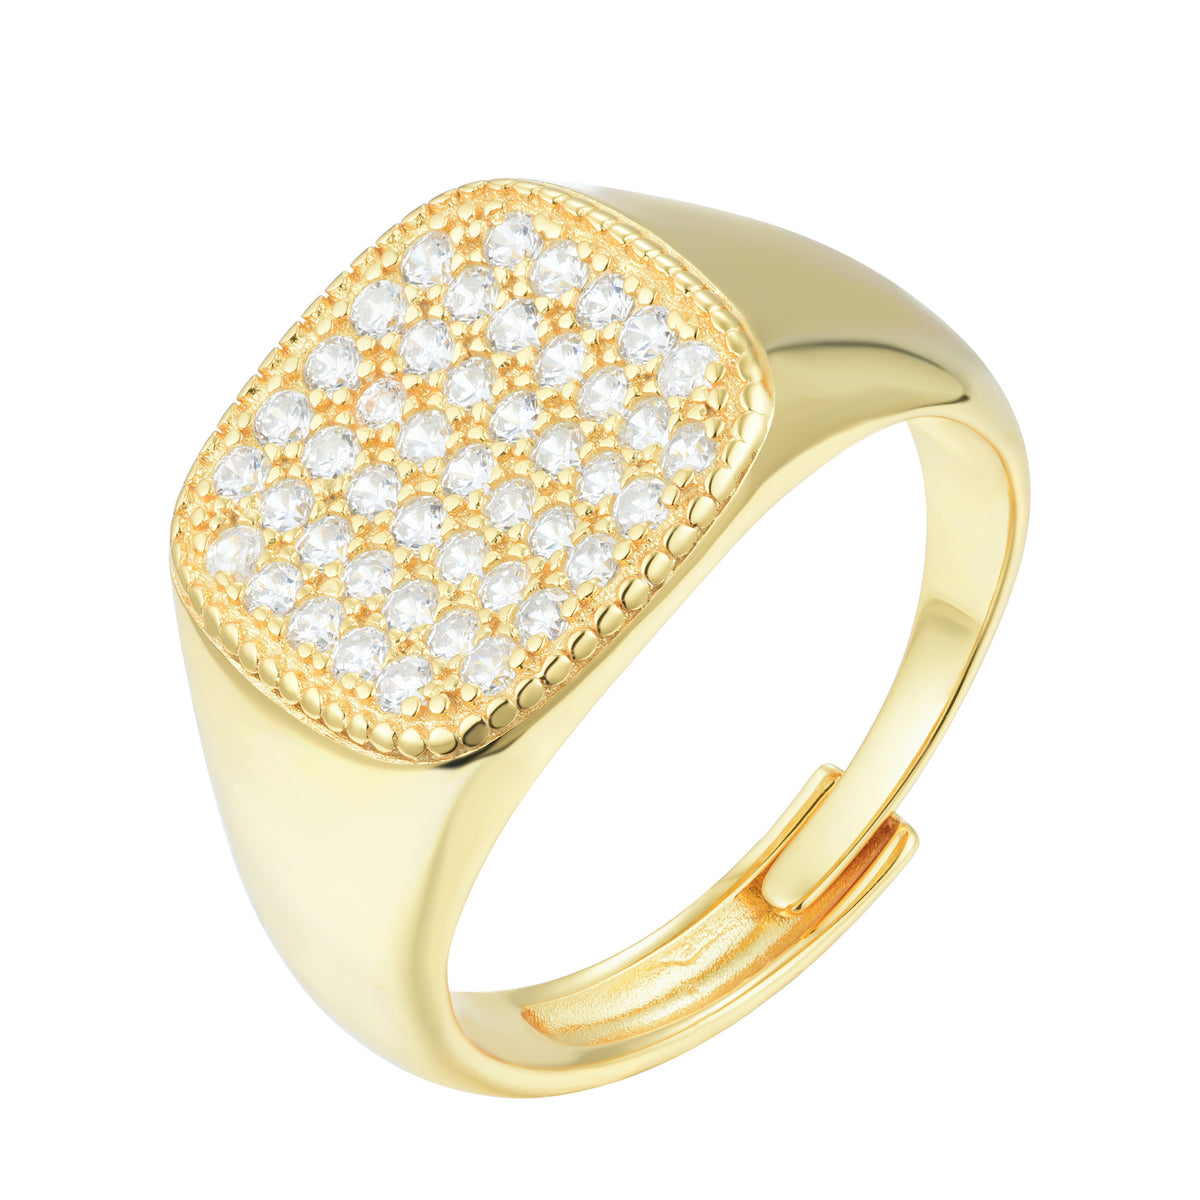 Fortuna | San Gimignano Ring | 925 Silver | White CZ | 18K Gold Plated